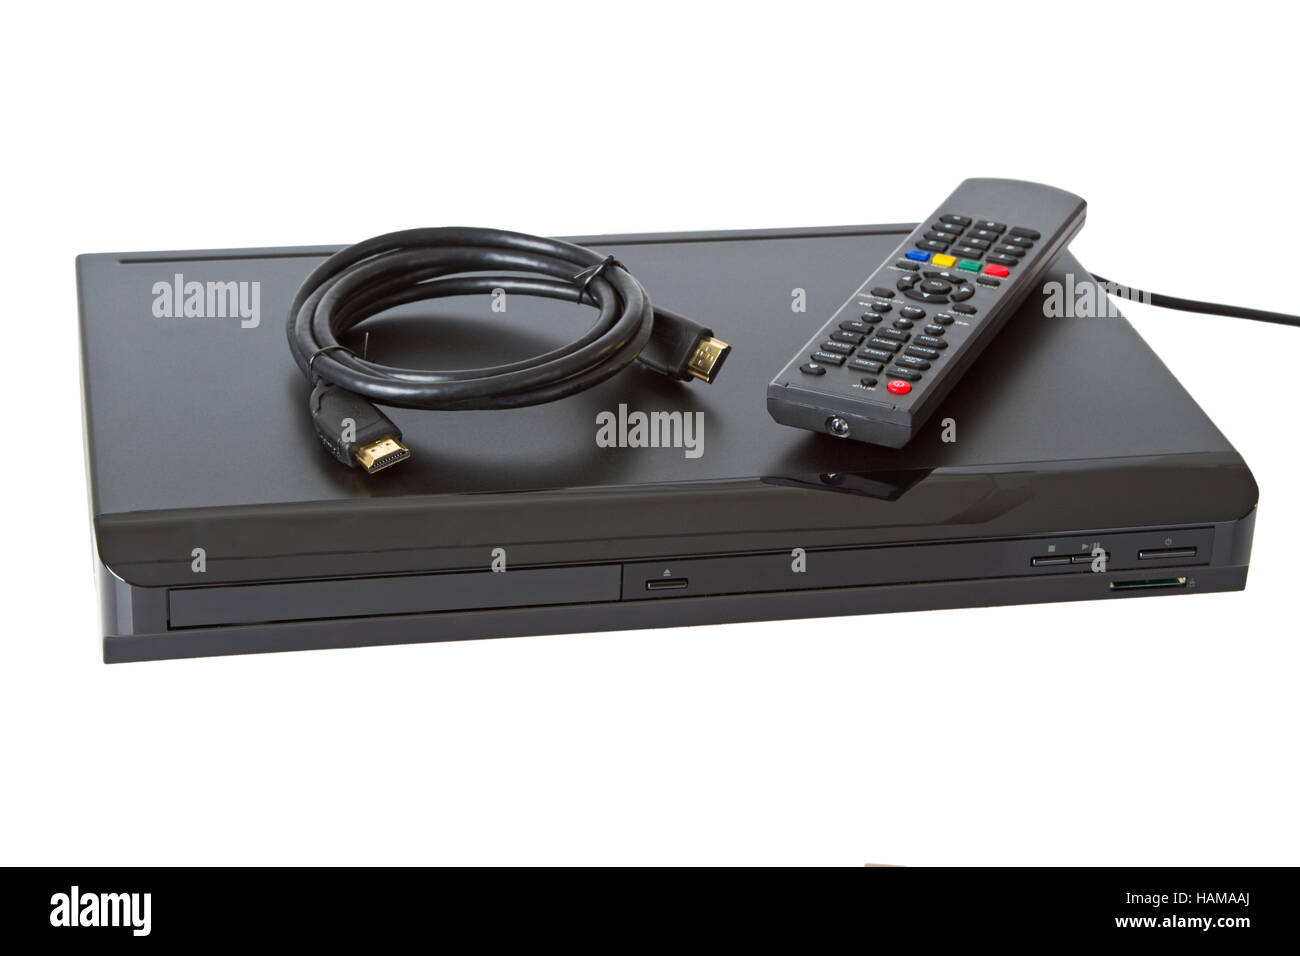 Multi Media blue ray player  on white background - Stock Image